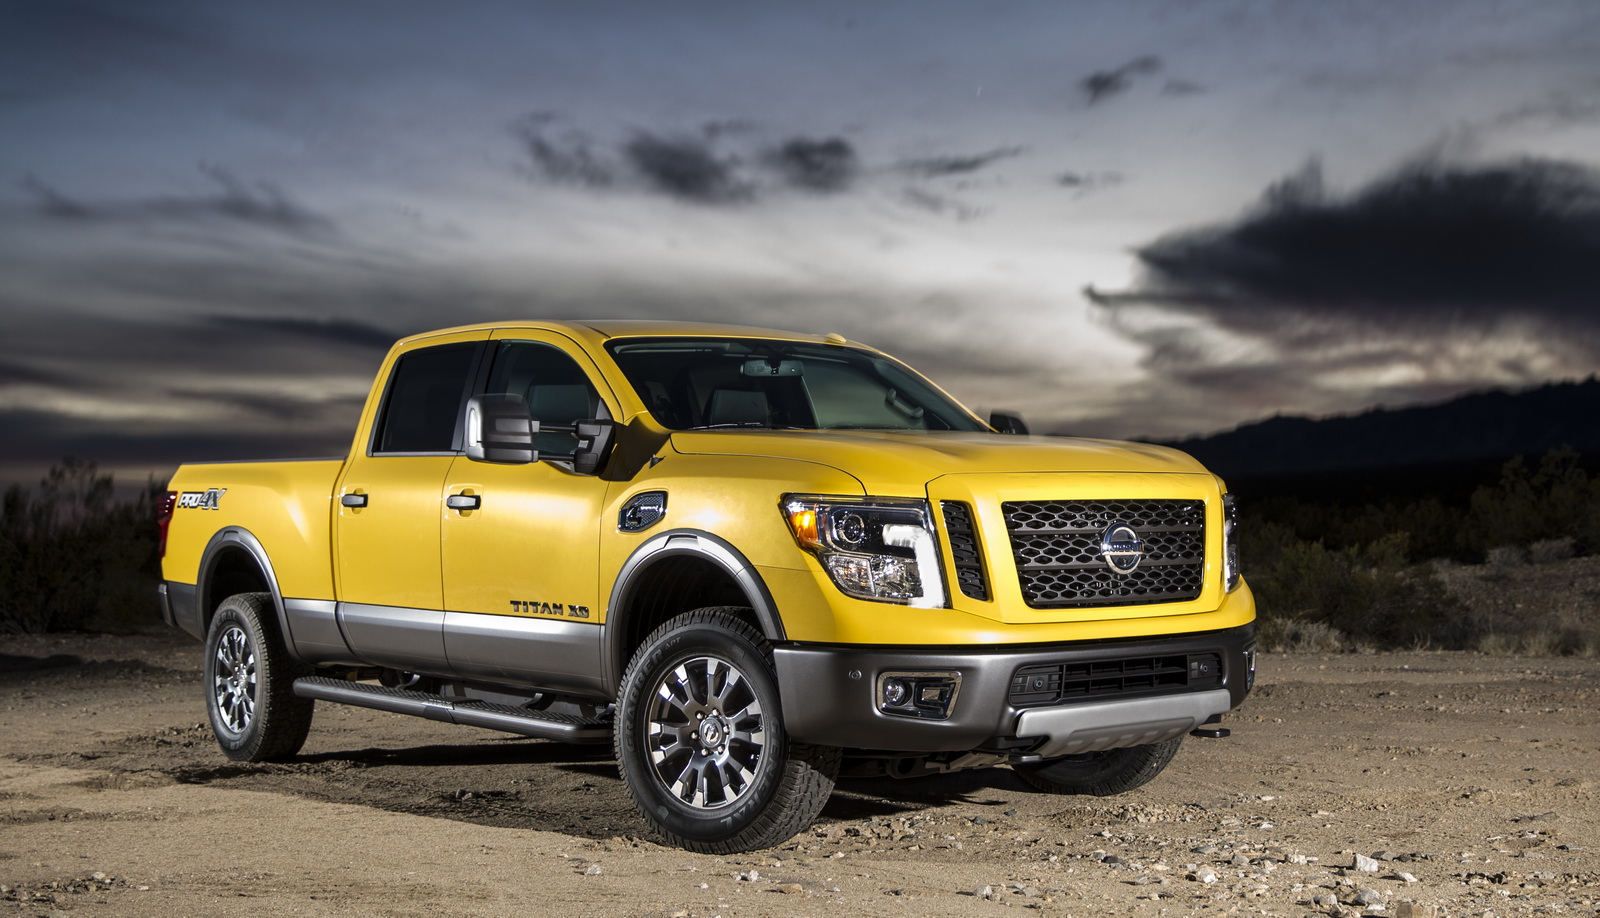 Lifted Nissan Titan 4X4 For Sale hd gallery